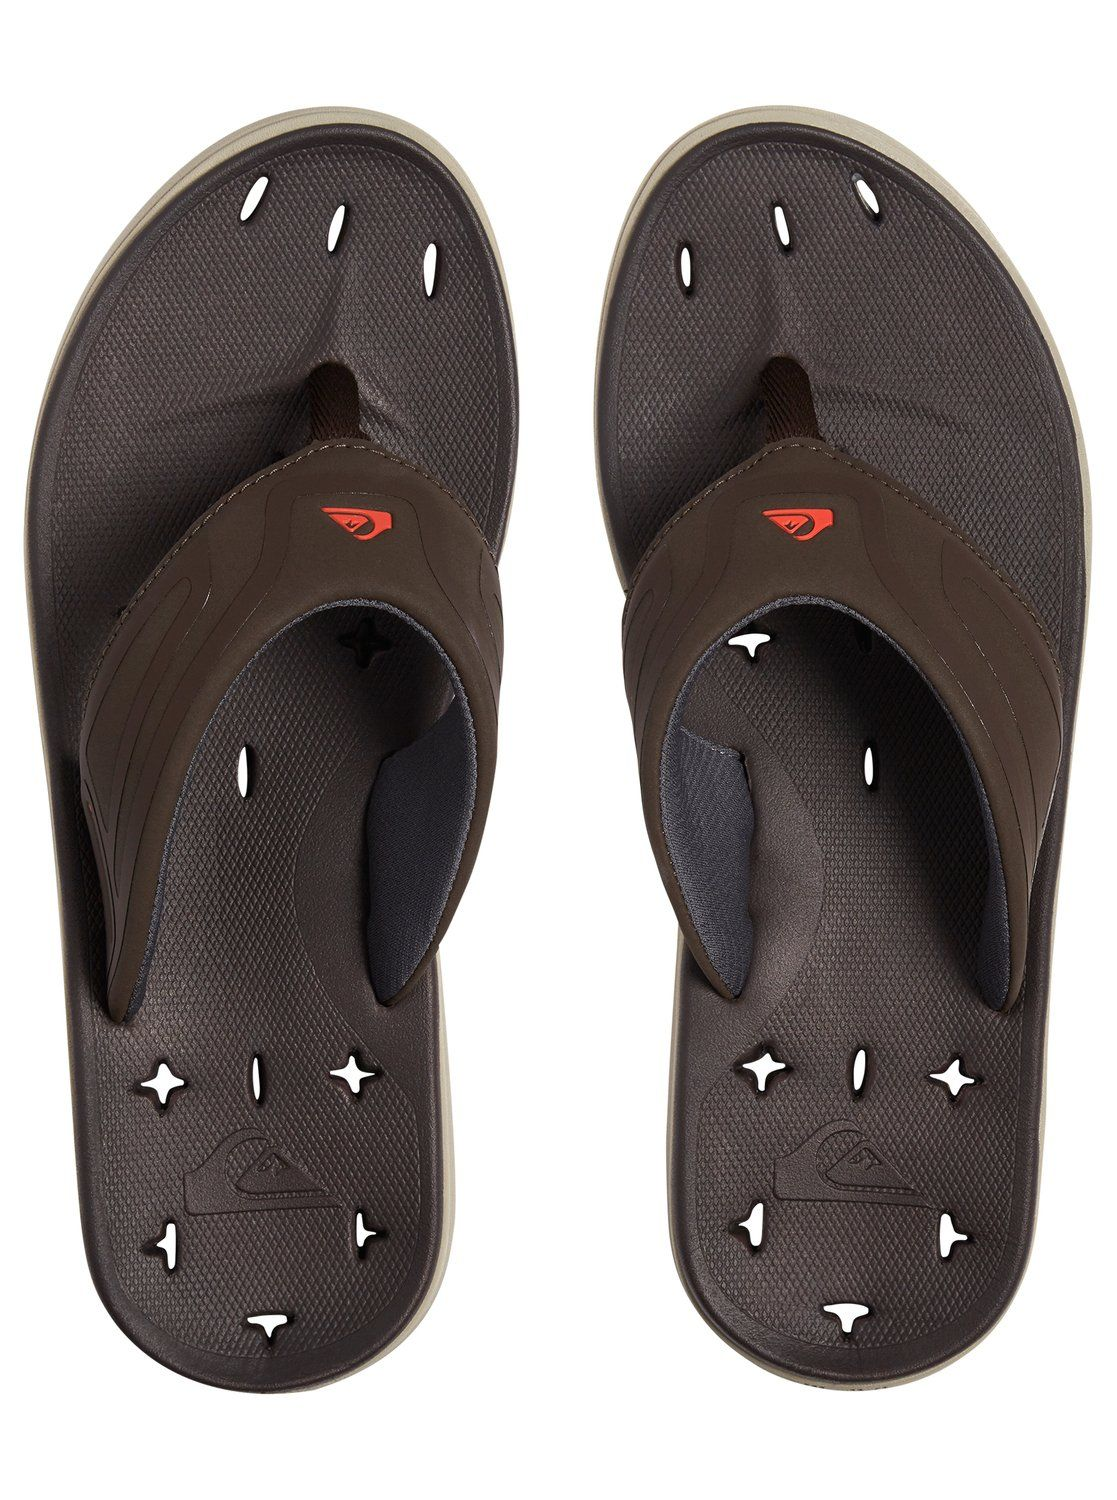 ONeill FM Plus Sandals Tongs Homme